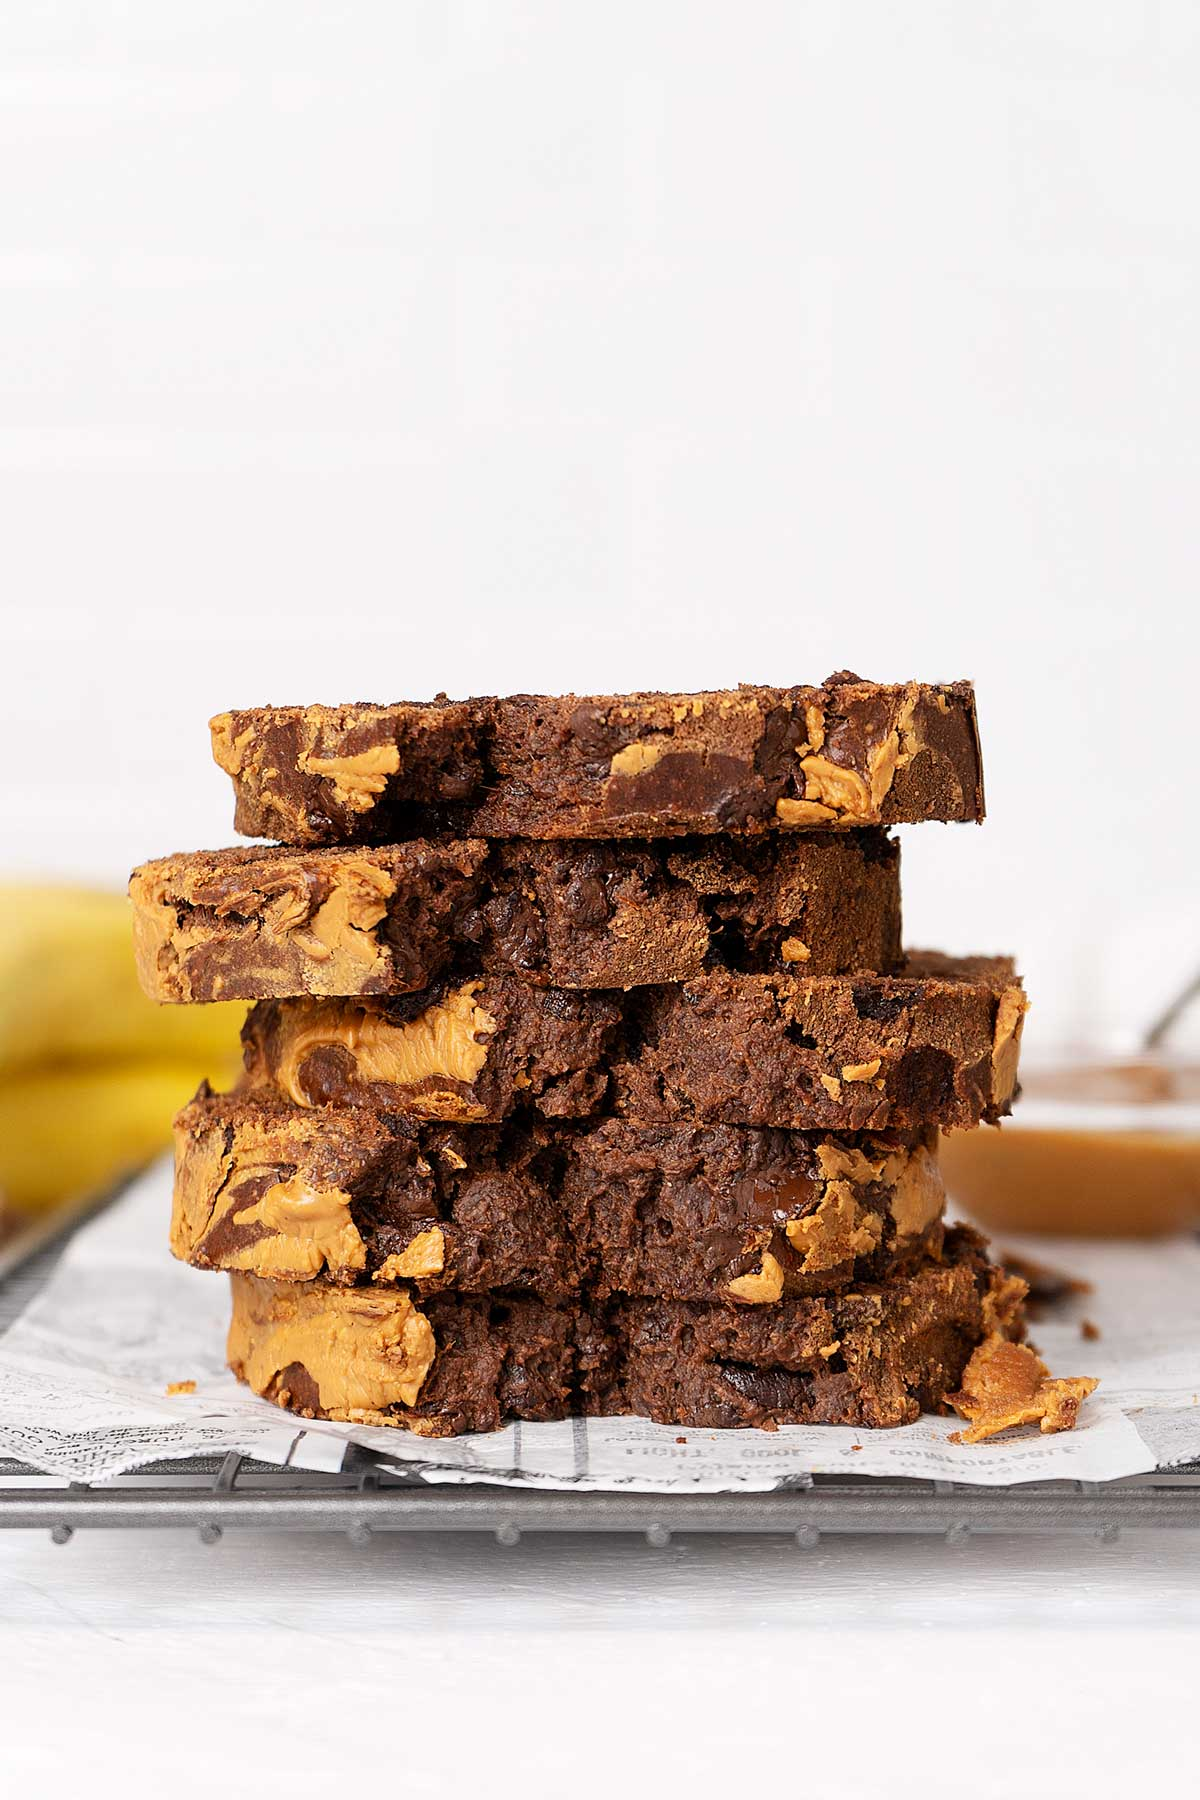 stacked slices of healthy banana bread